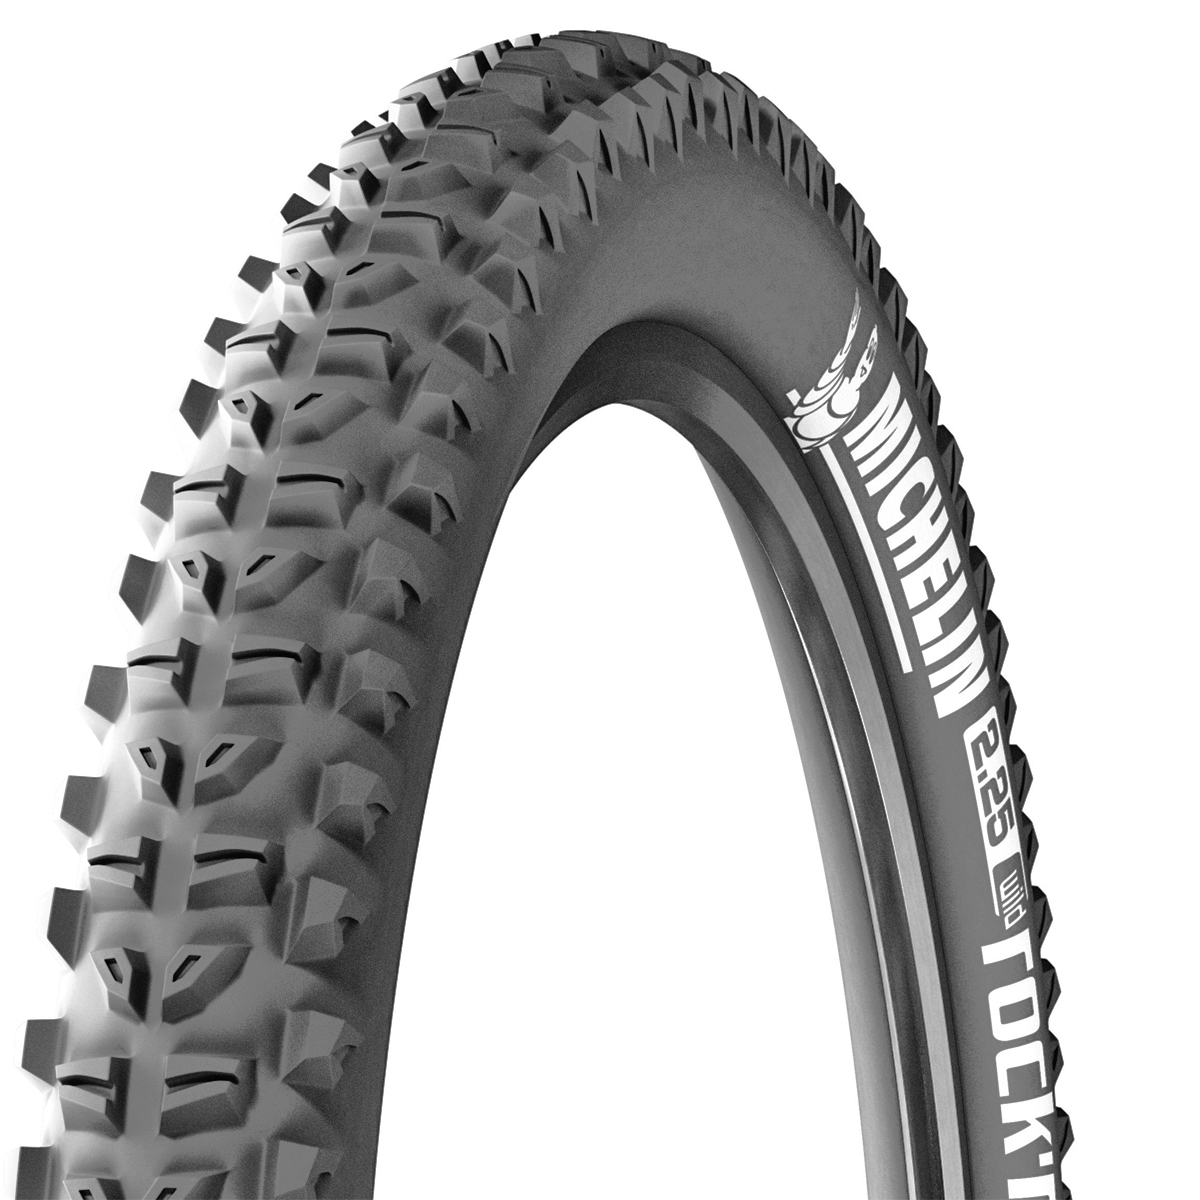 Pneu 26 x 2.40 Michelin Wild Rock'R renforcé (TS - TLR)